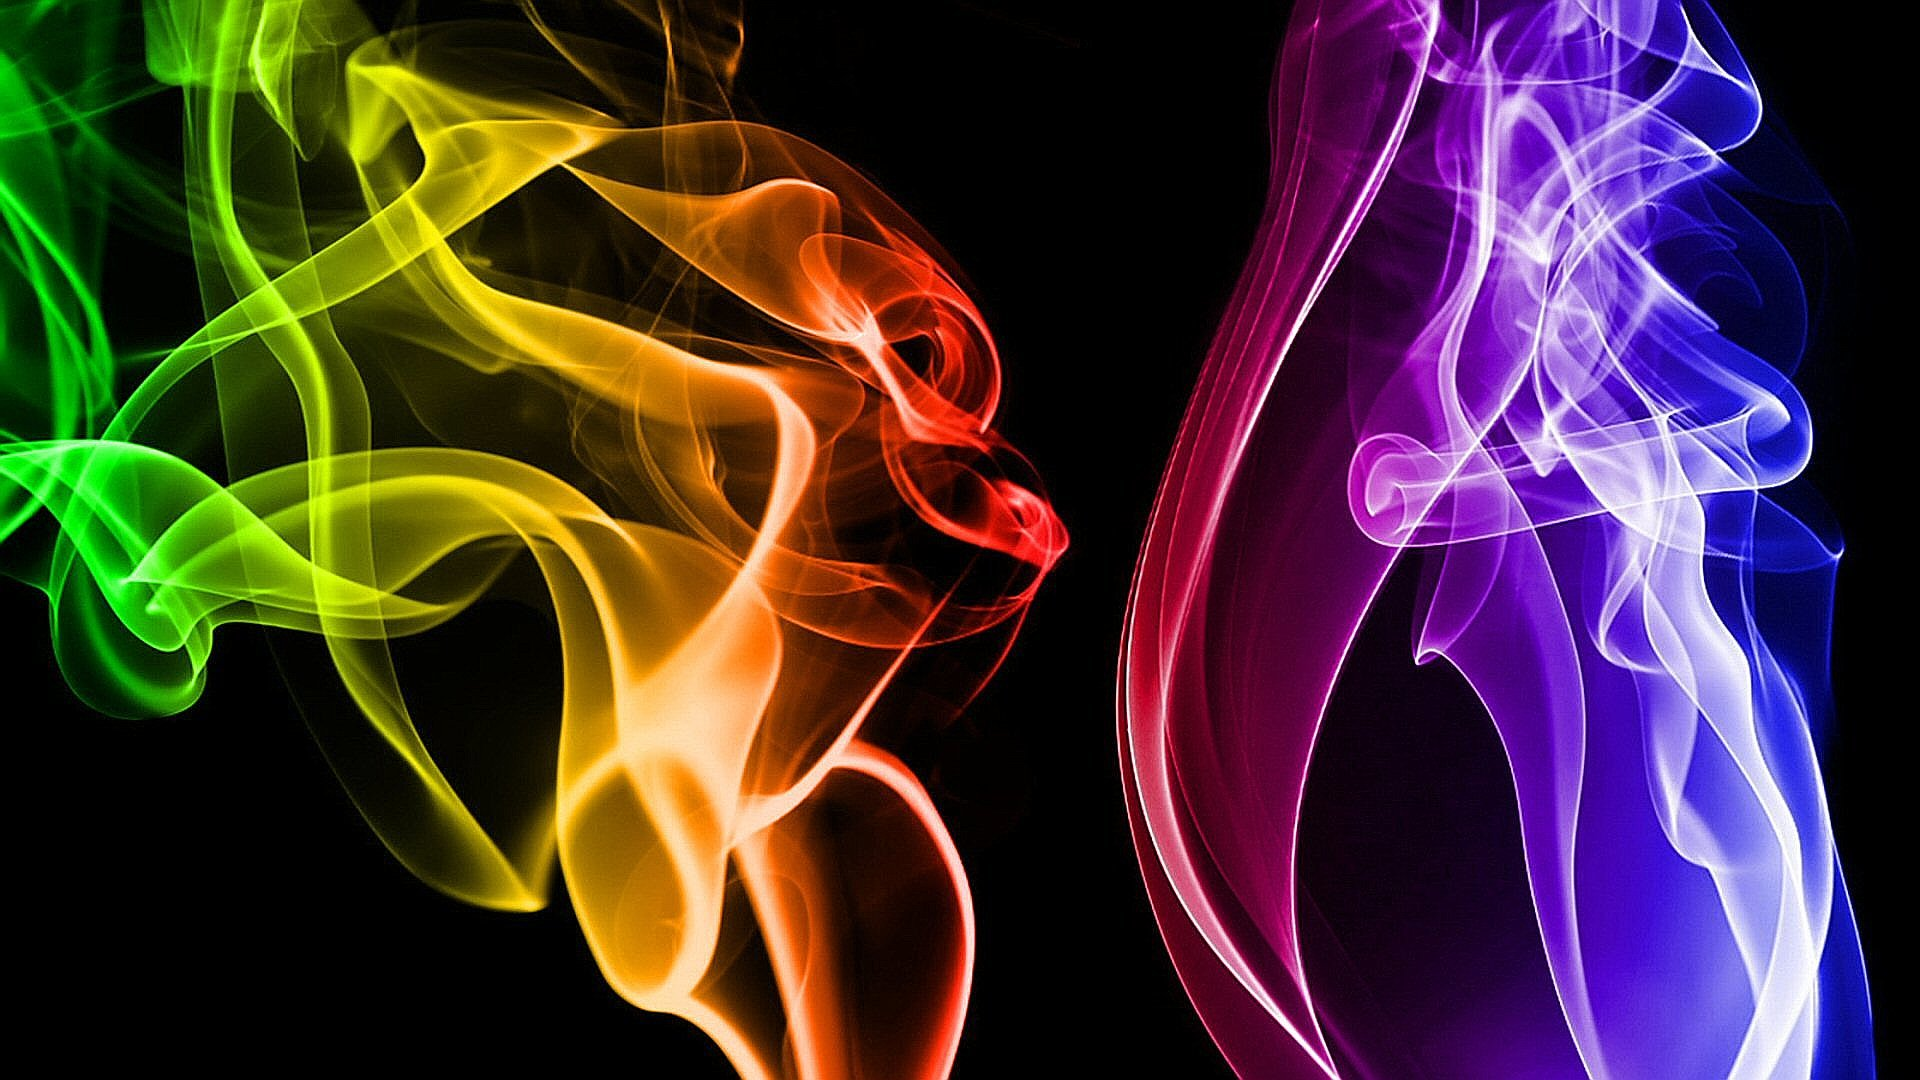 Awesome Smoke free wallpaper ID:212137 for hd 1920x1080 computer